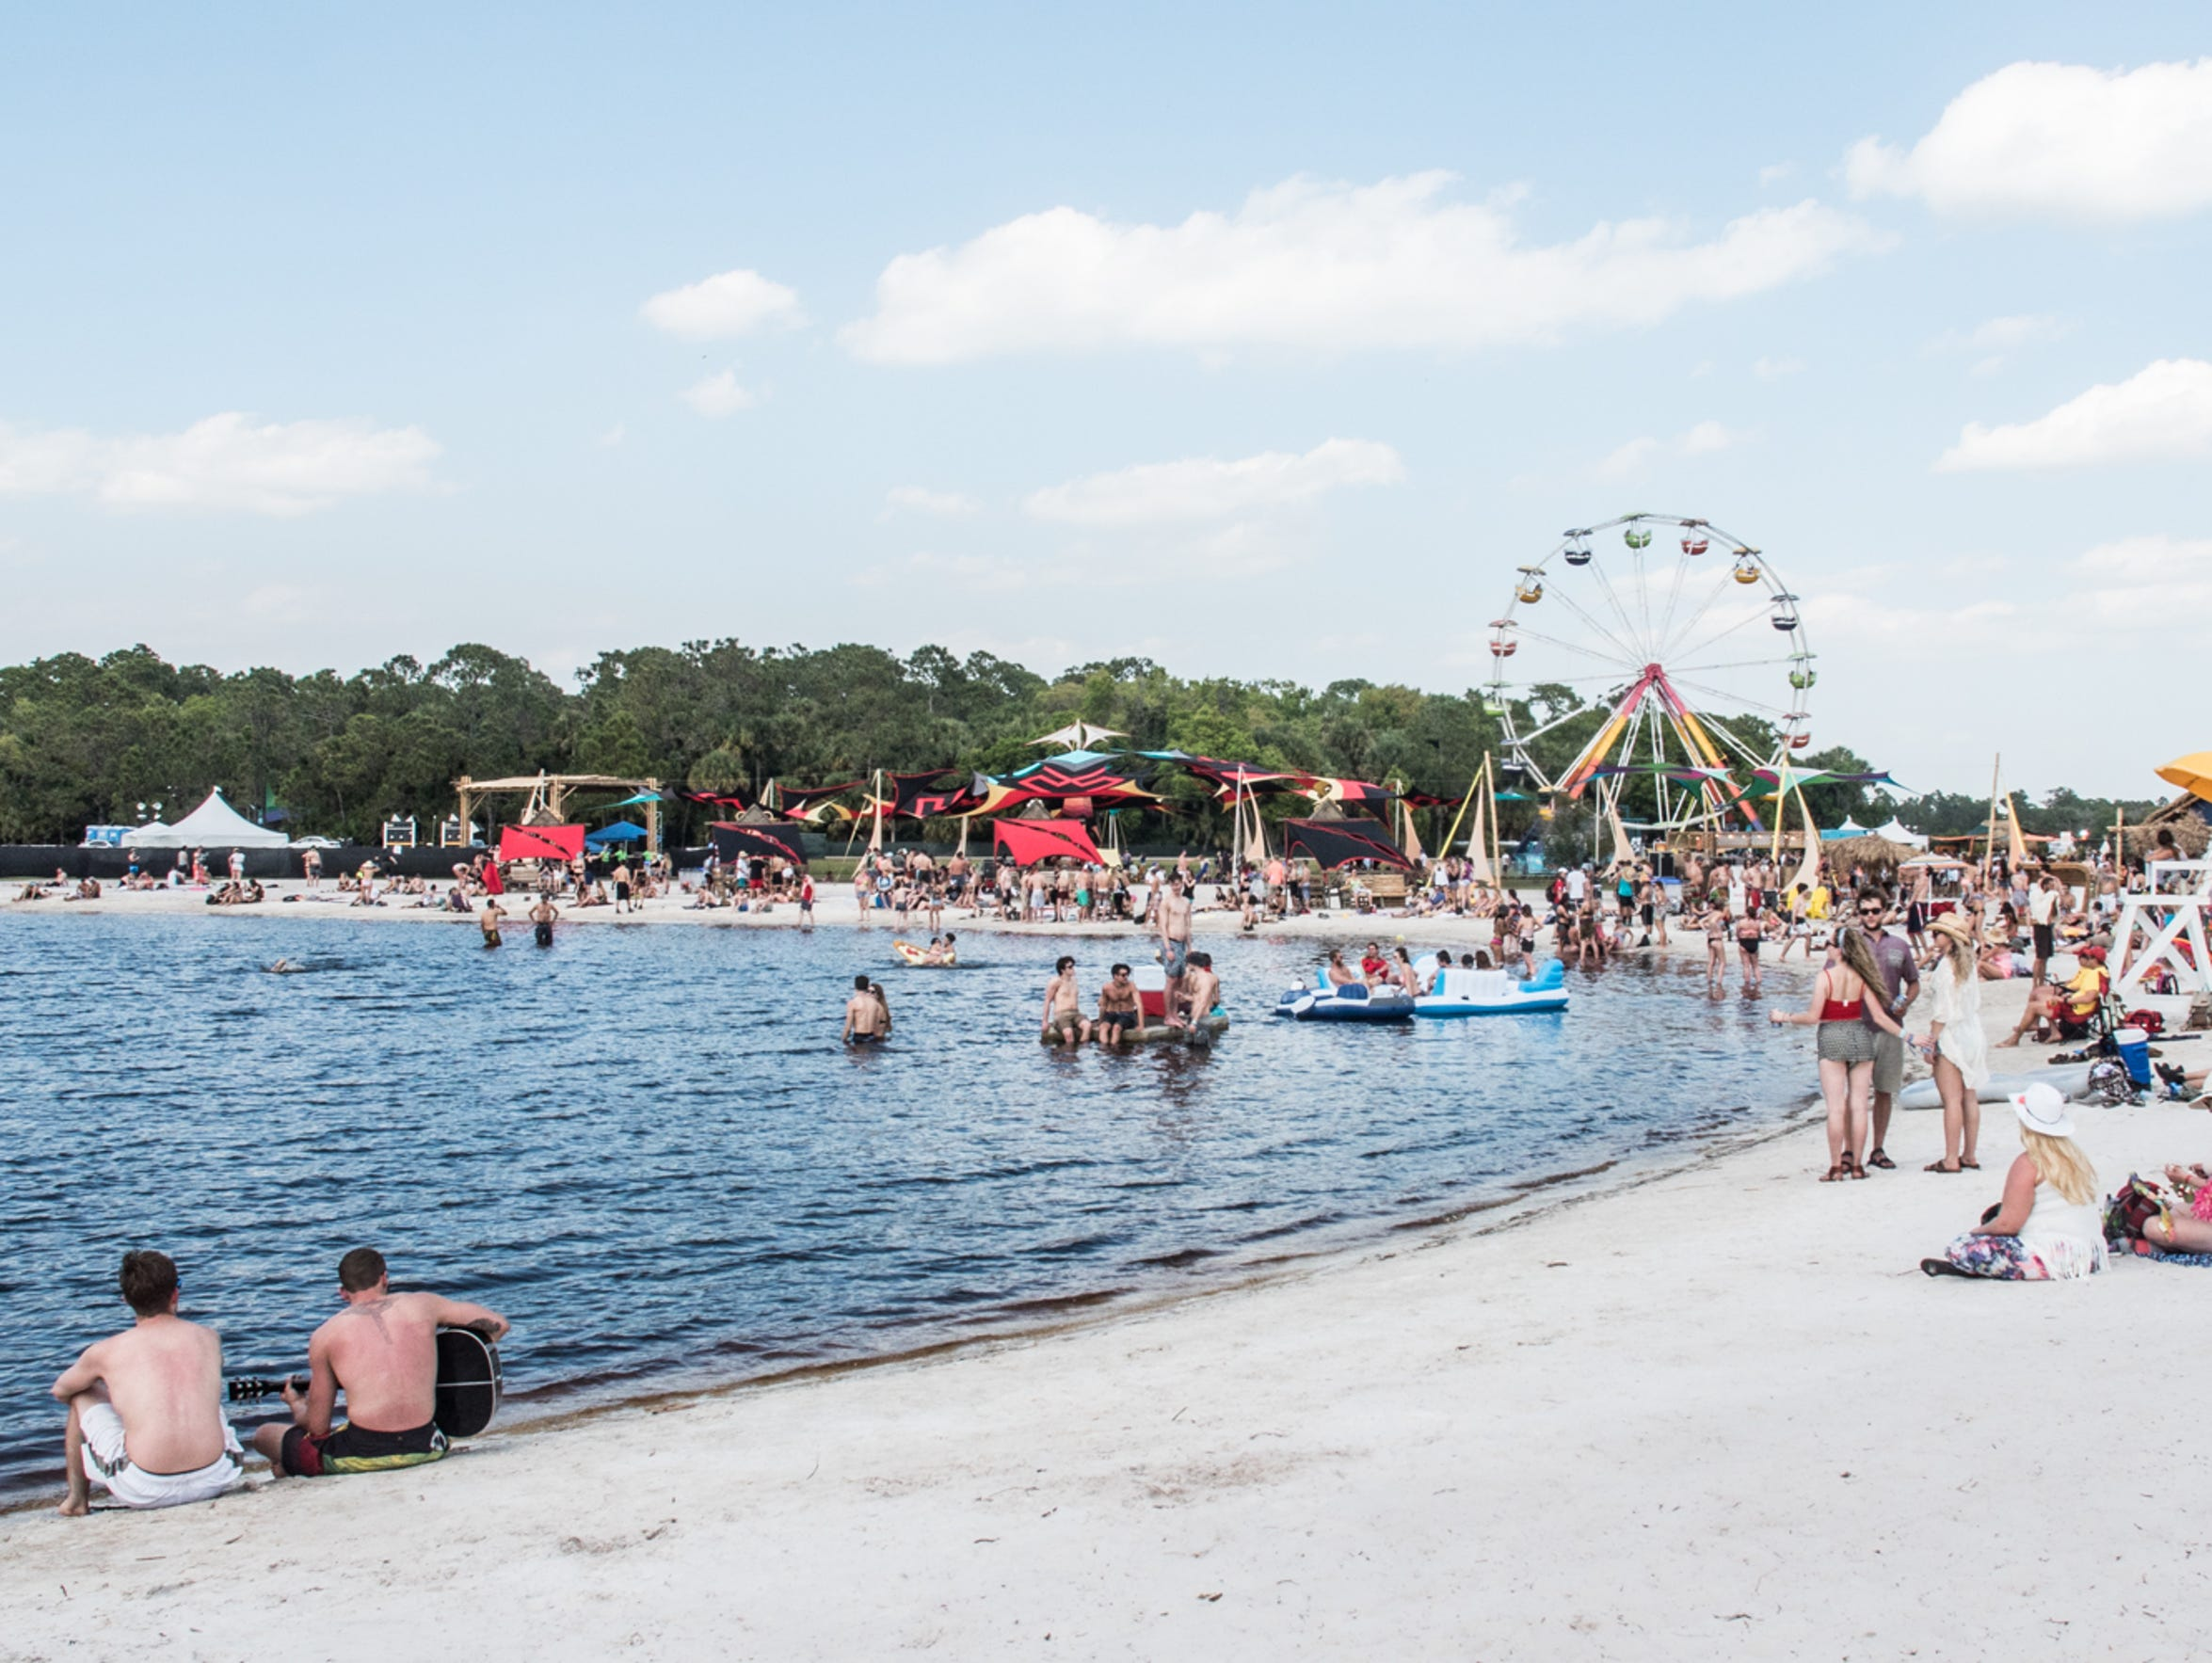 Aquachobee, the festival's beach.